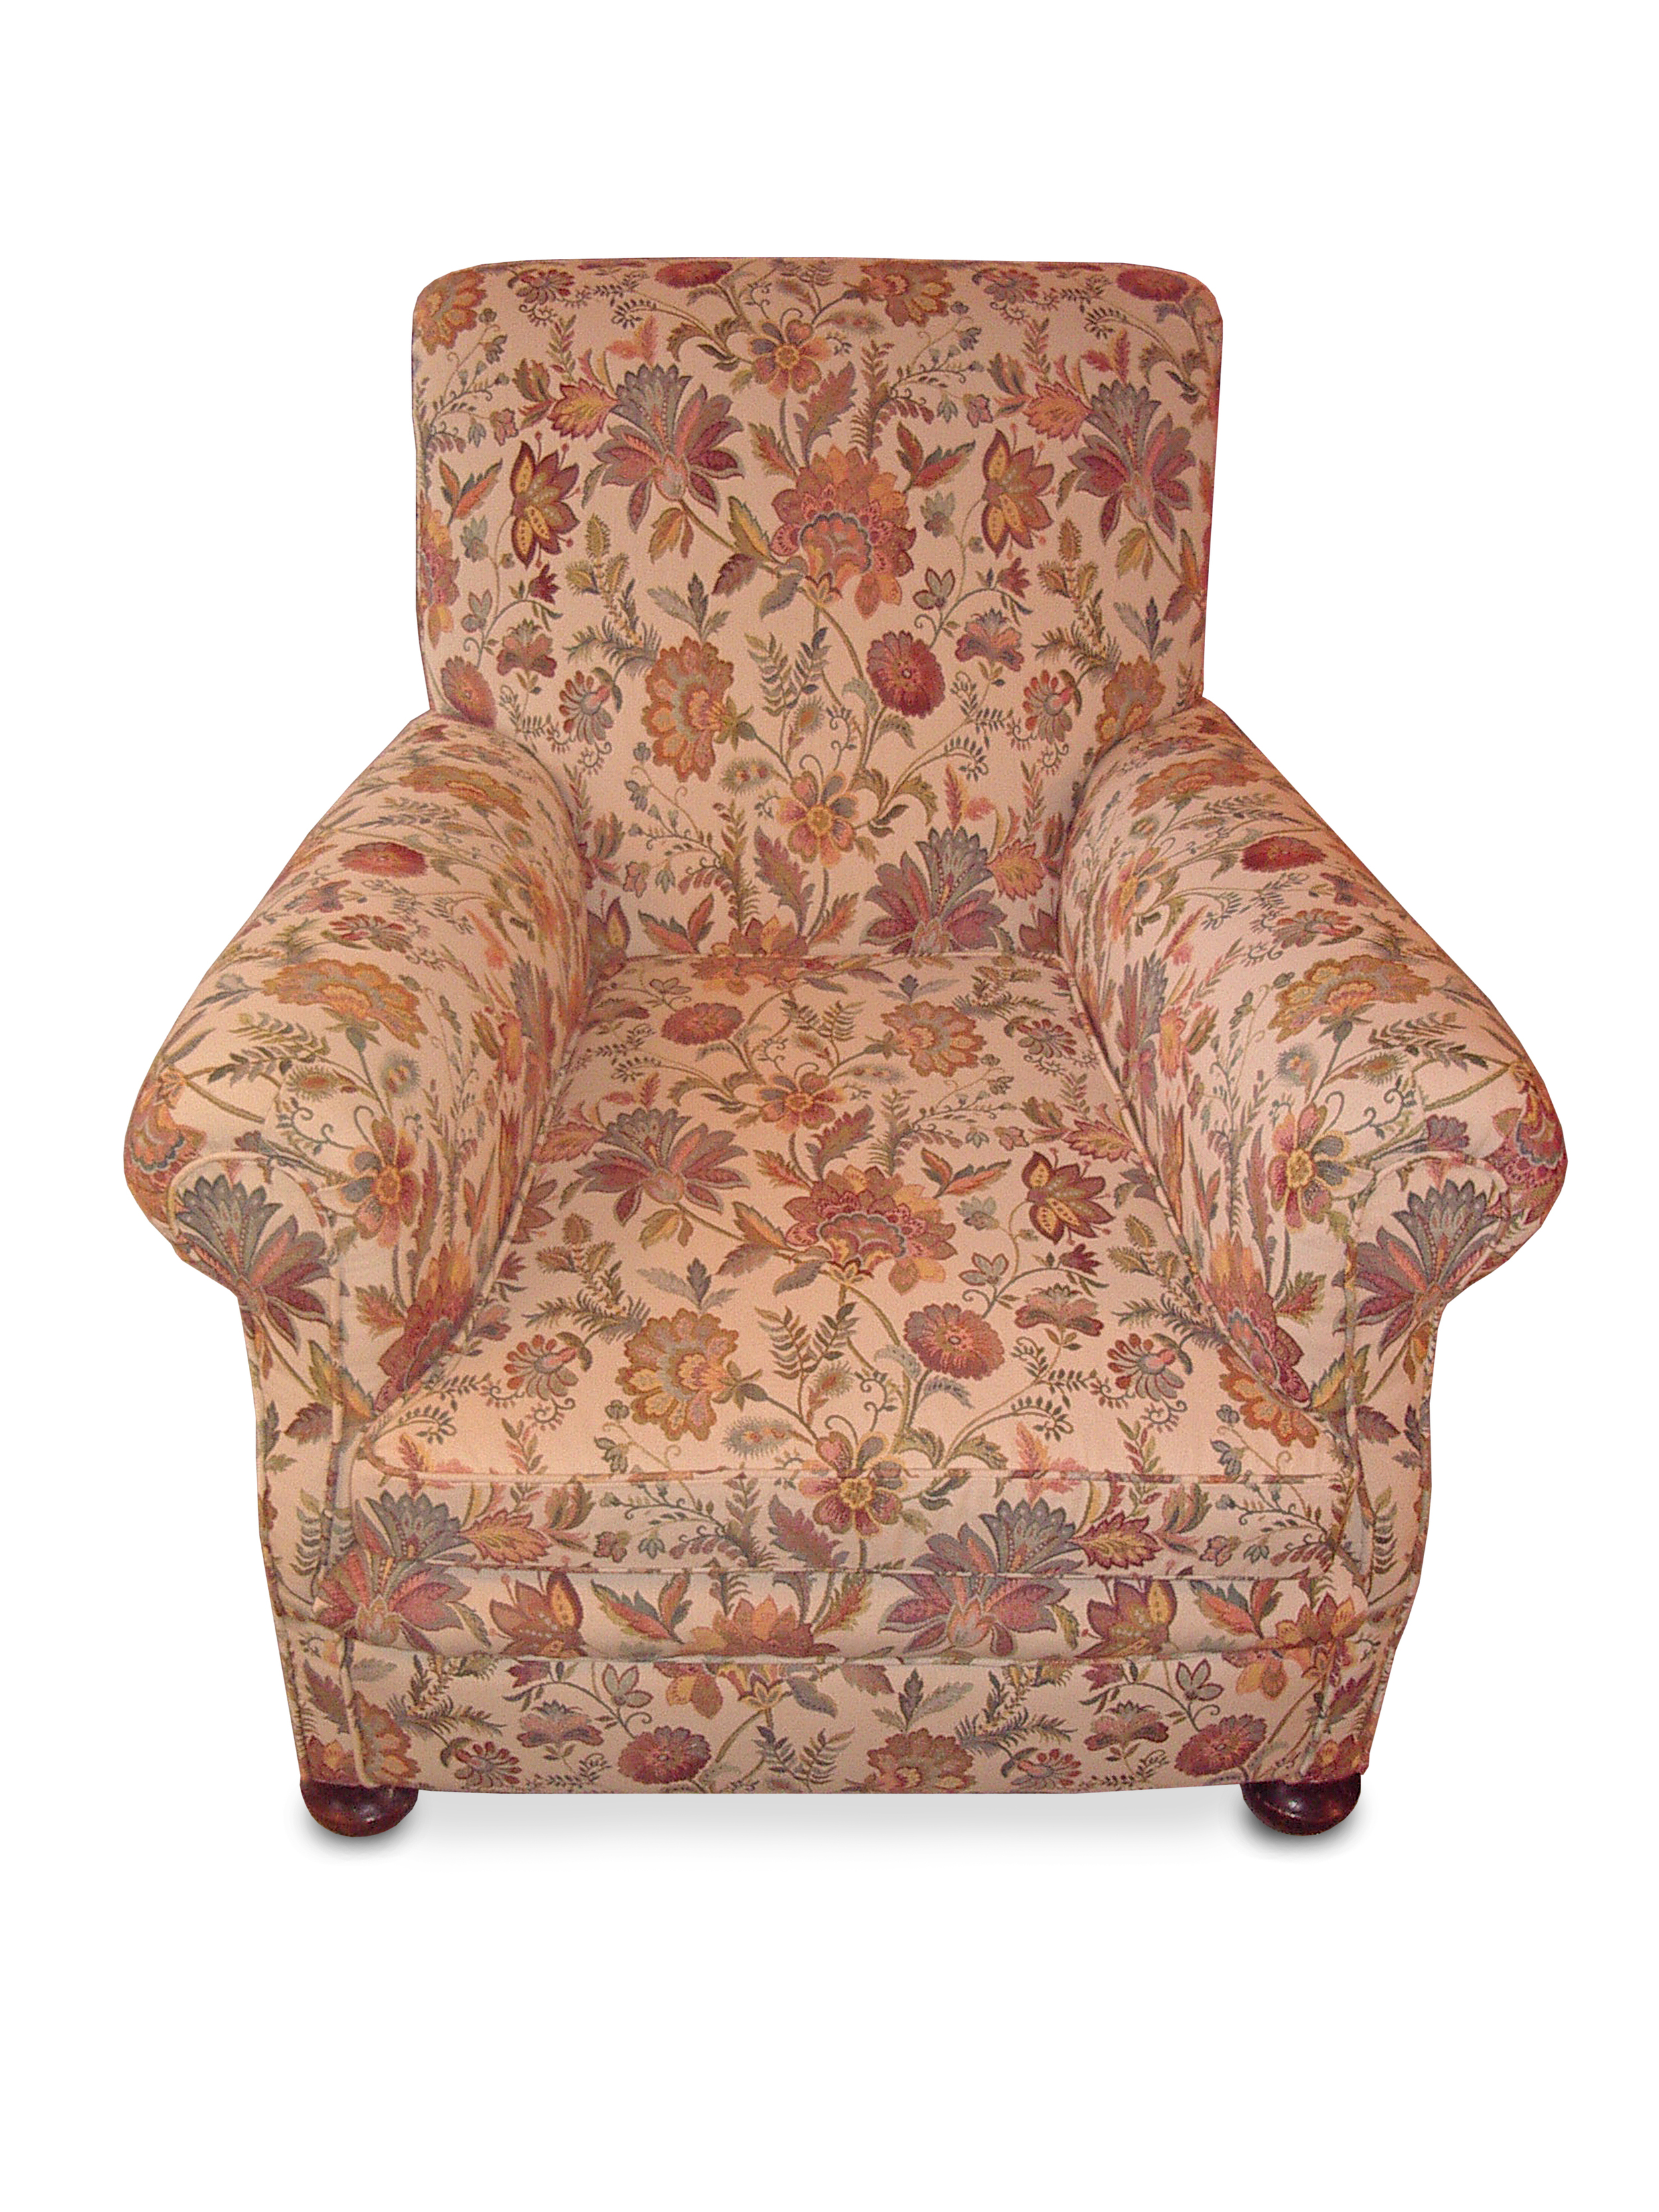 Classic armchair in striking flower pattern fabricrunning throughoutthe chair, stitched facing arms and feather/down cushion with bun feet